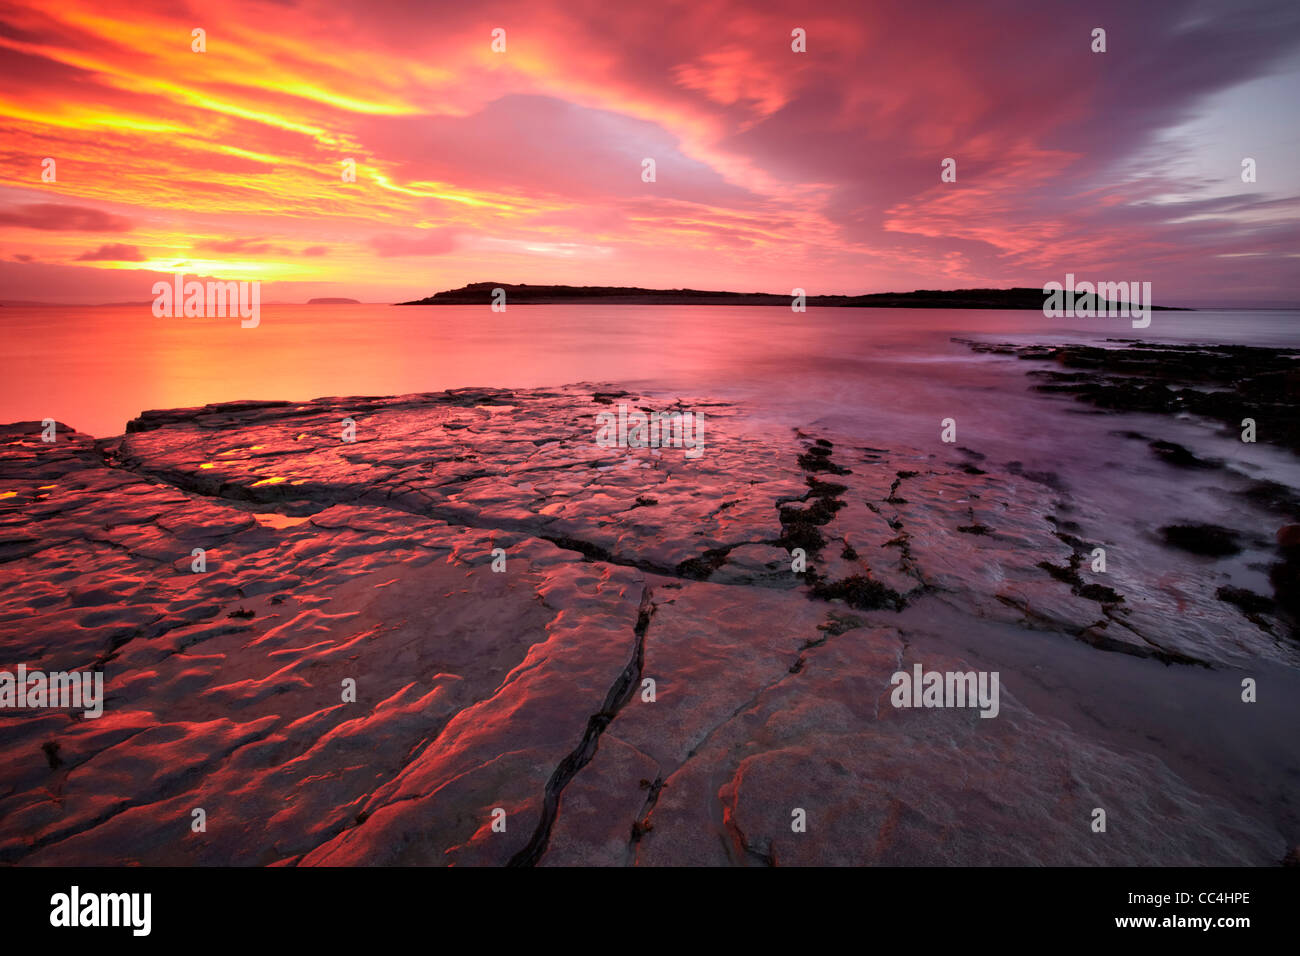 Sully Insel, Sully, Vale of Glamorgan, Bristol Channel, Dezember Dawn. Stockbild